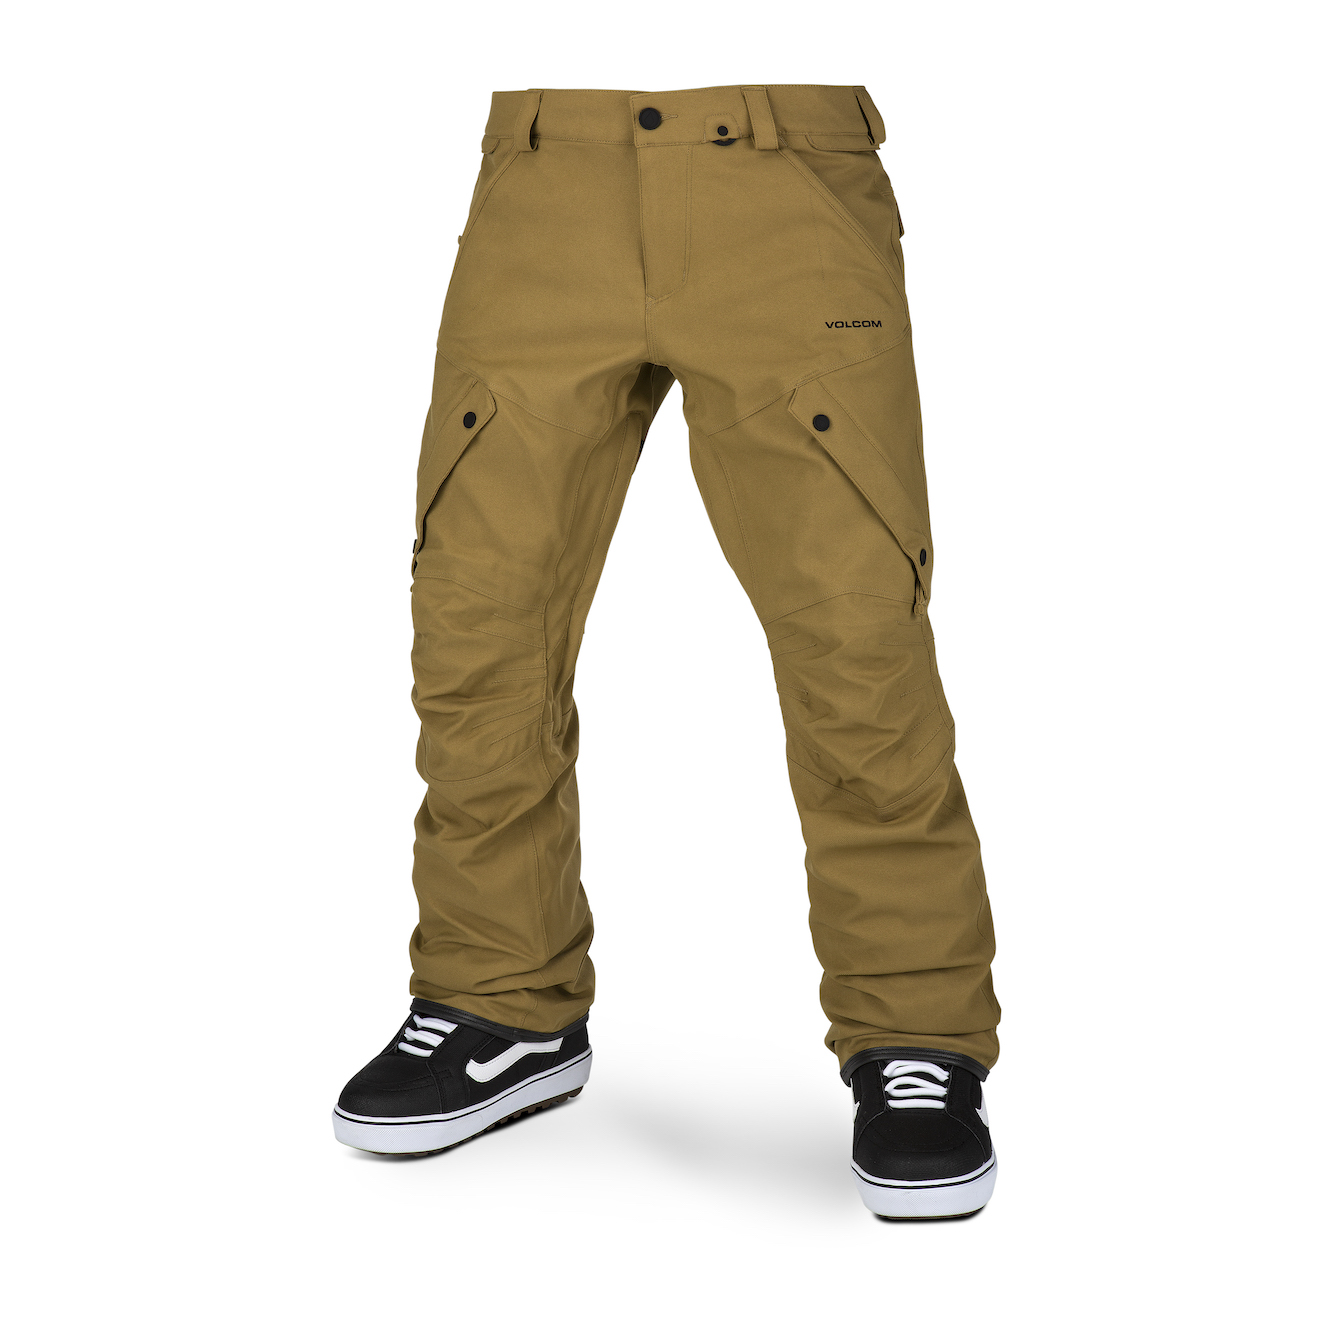 Volcom Articulated Pant 2021